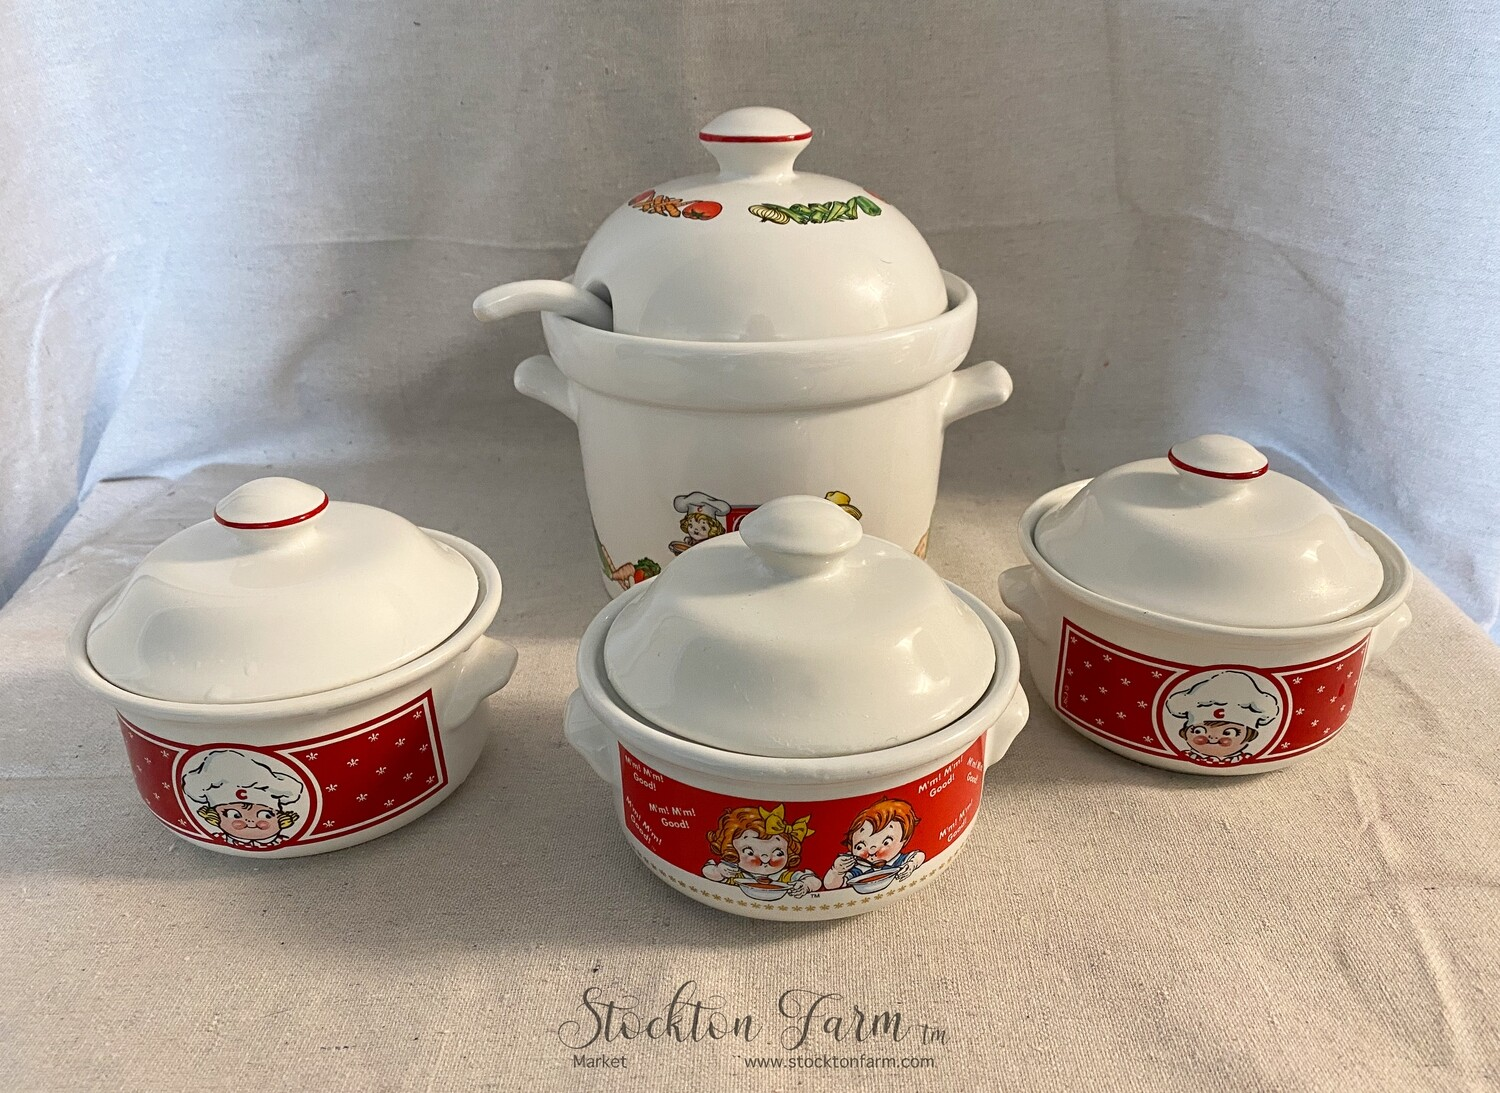 Campbell's Soup Tureen with Ladle and 3 Bowls